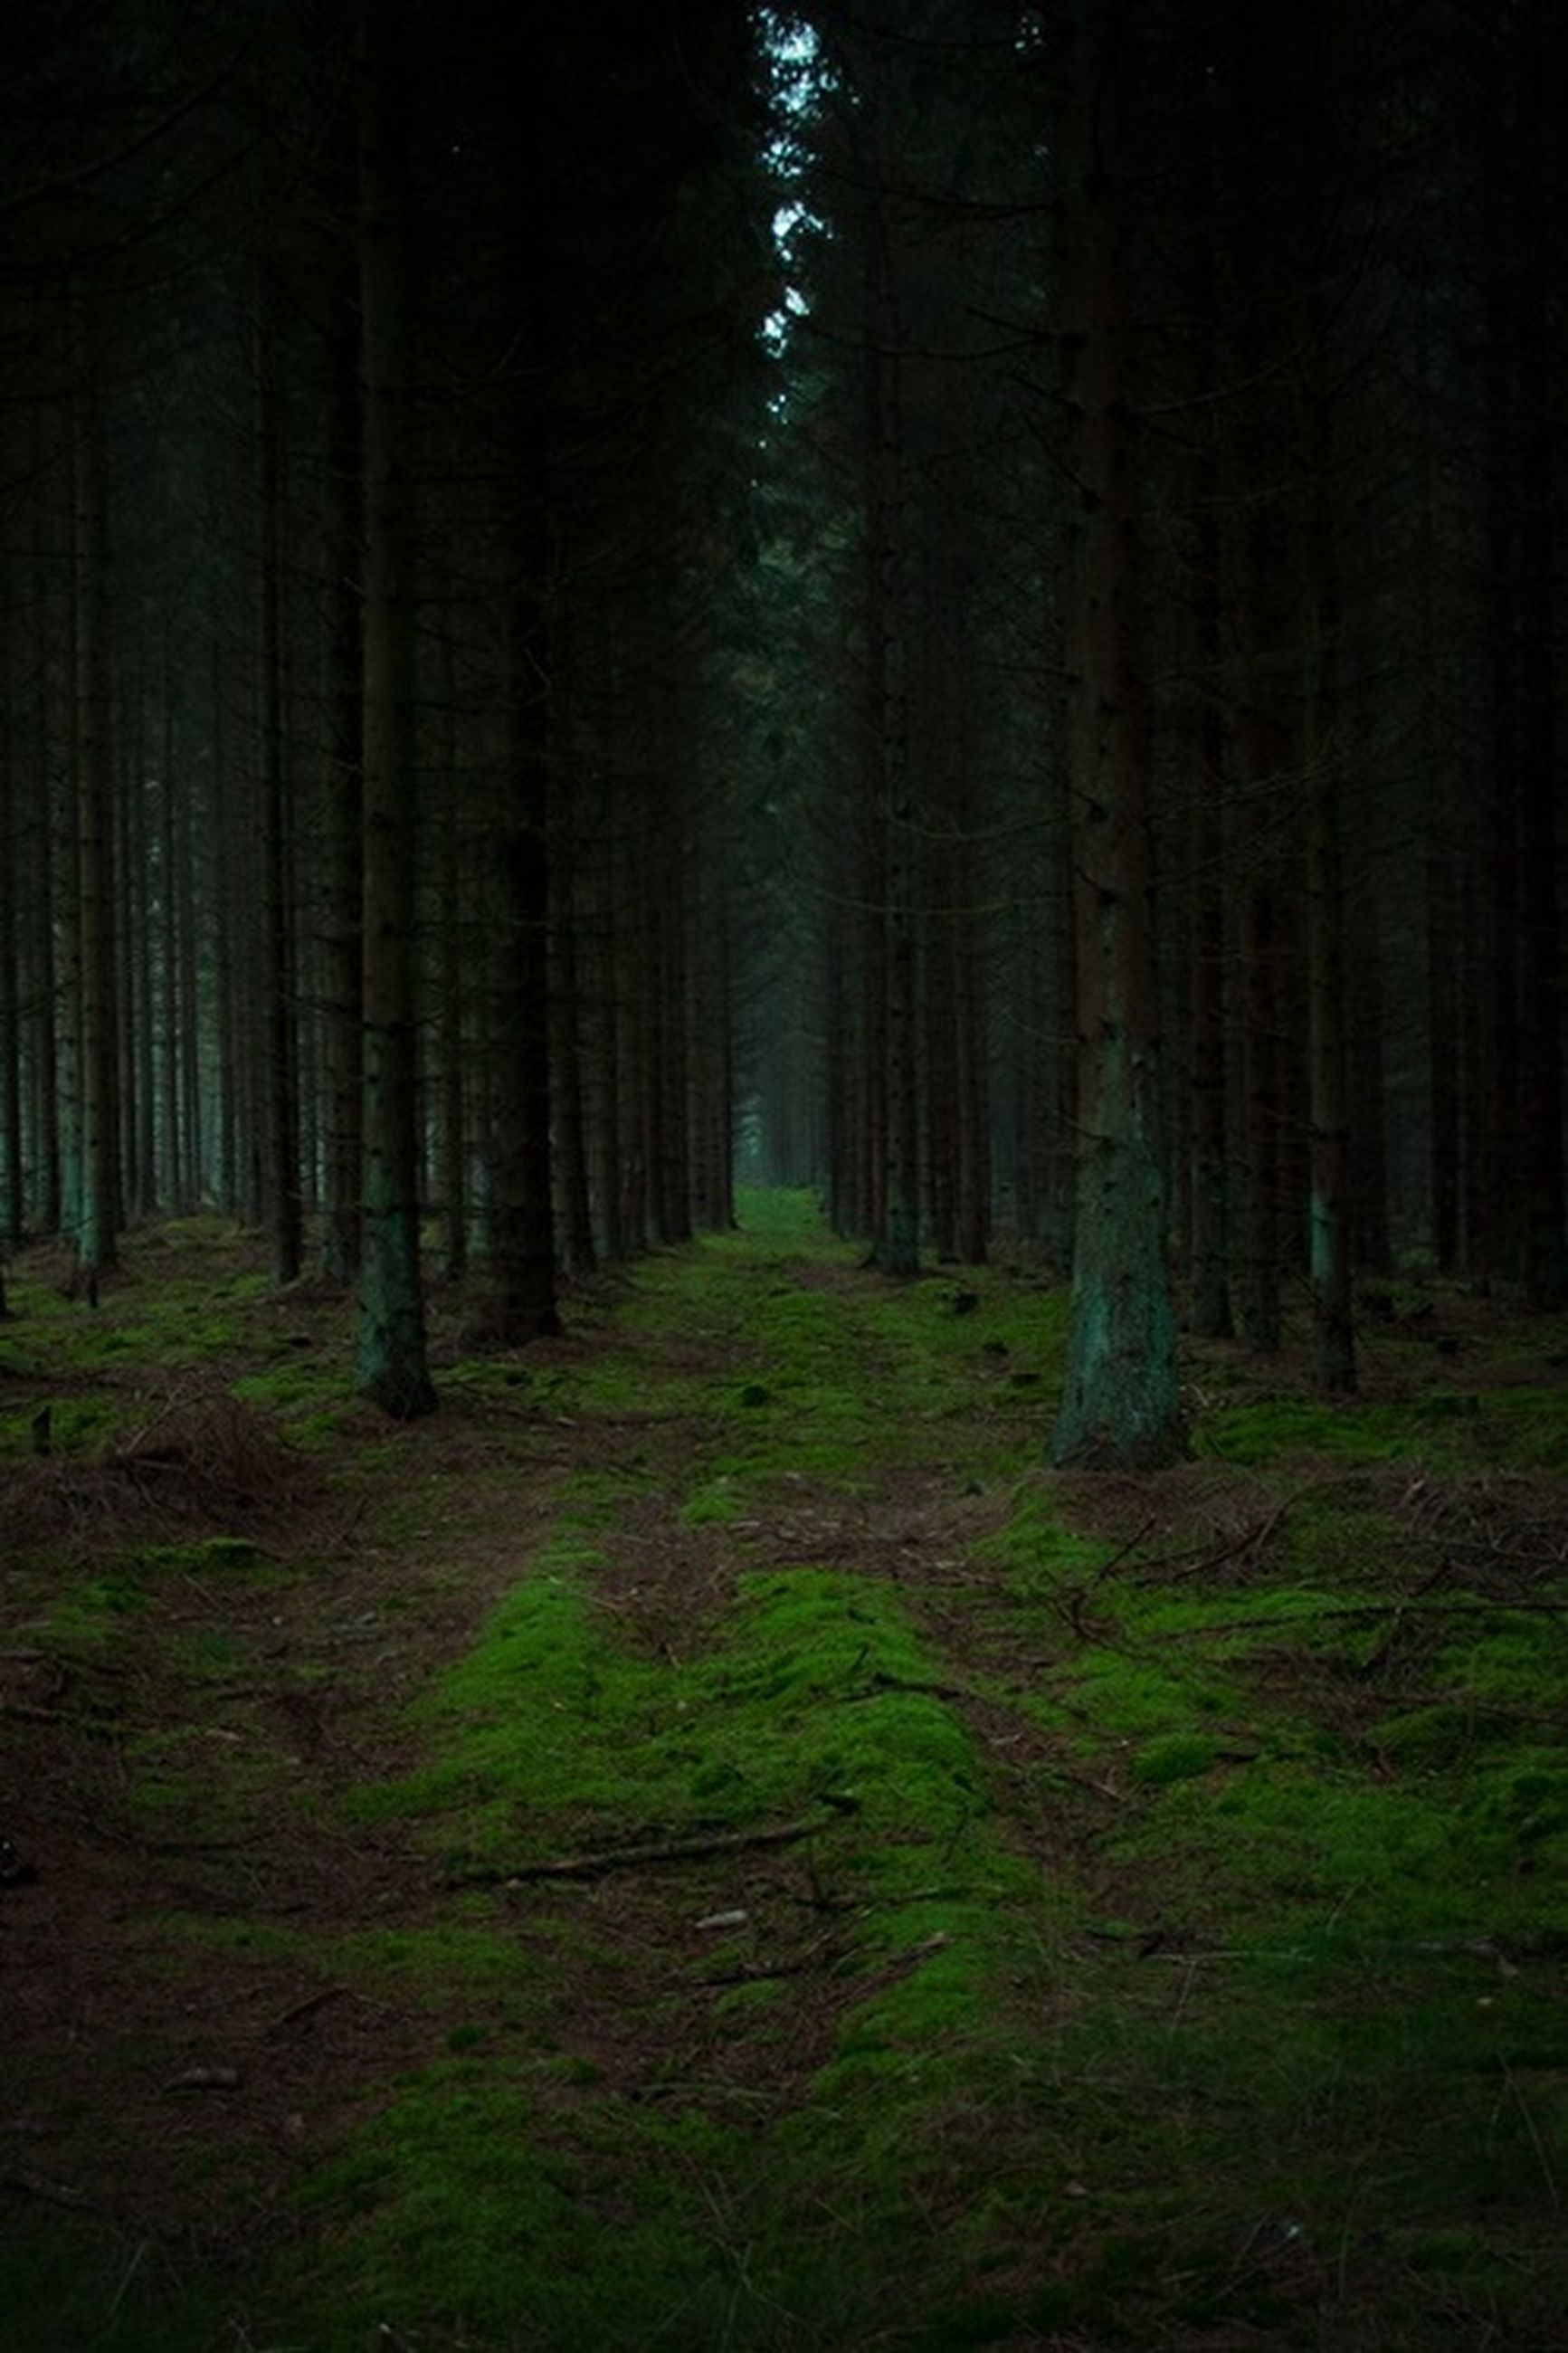 tree, forest, tree trunk, woodland, tranquility, tranquil scene, nature, growth, beauty in nature, landscape, scenics, non-urban scene, green color, the way forward, grass, woods, outdoors, no people, day, branch